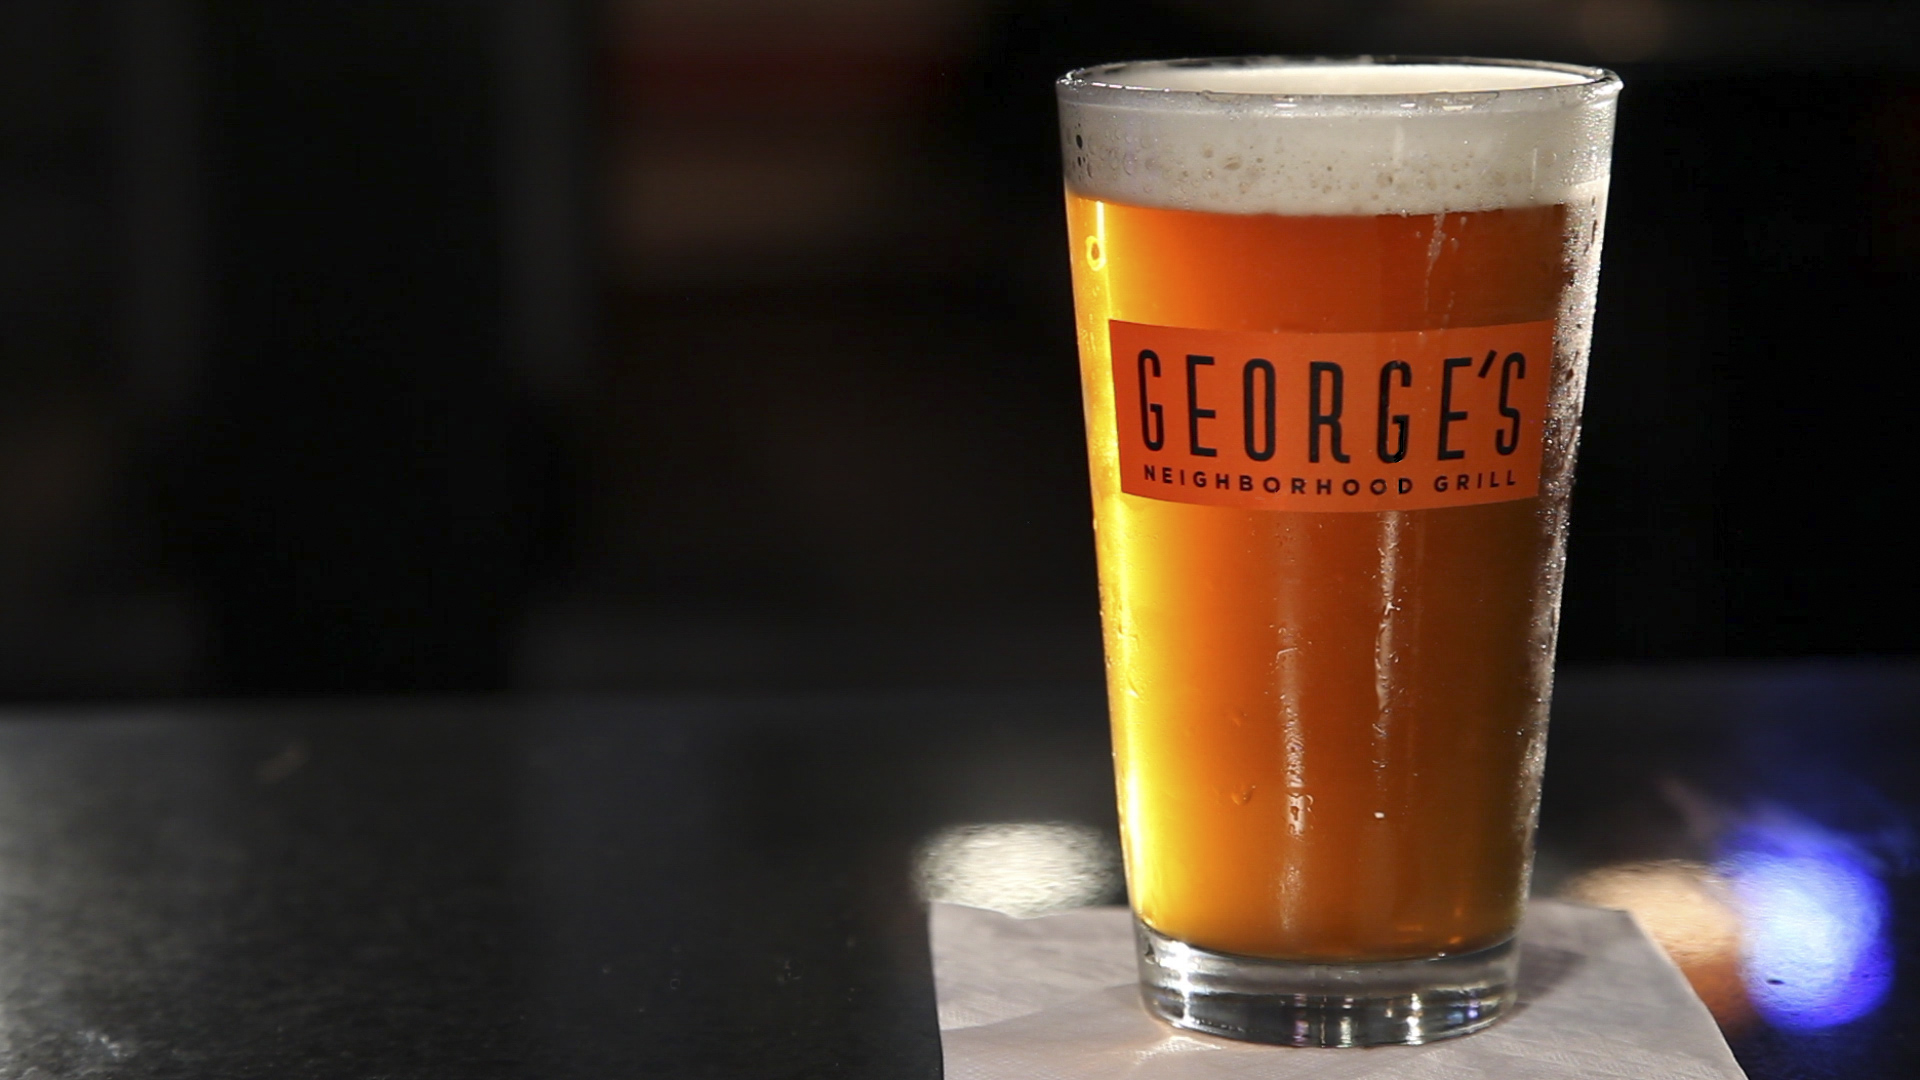 a George's Neighboorhood Grill glass with beer inside